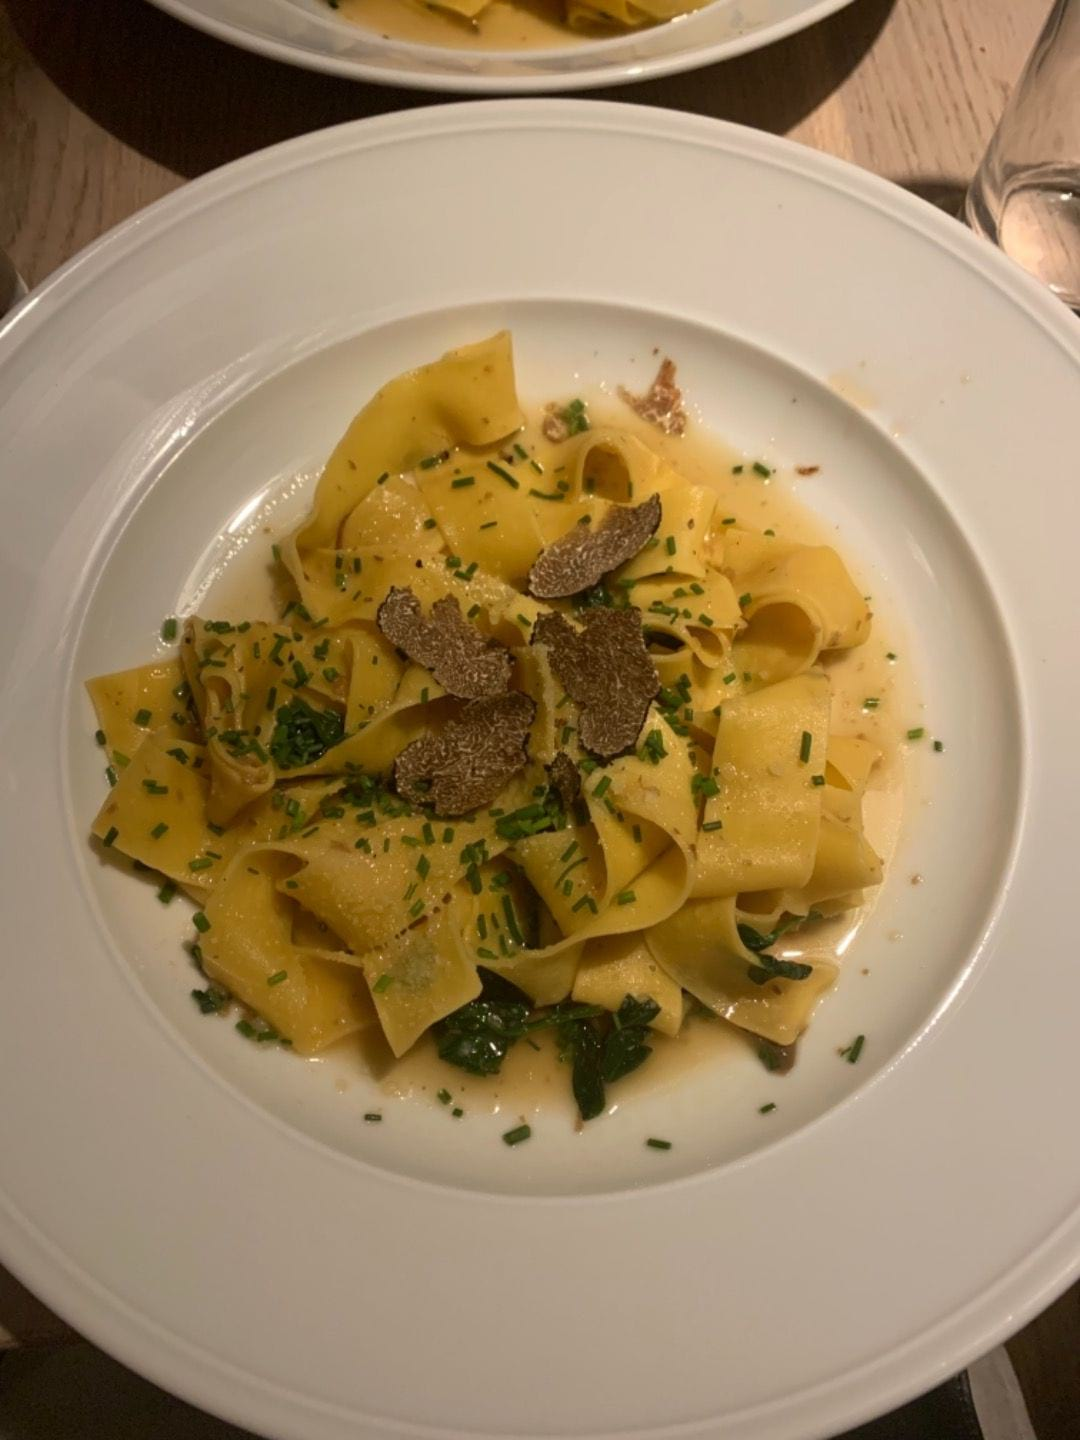 Photo from Restaurant Aubergine by Veronica F.